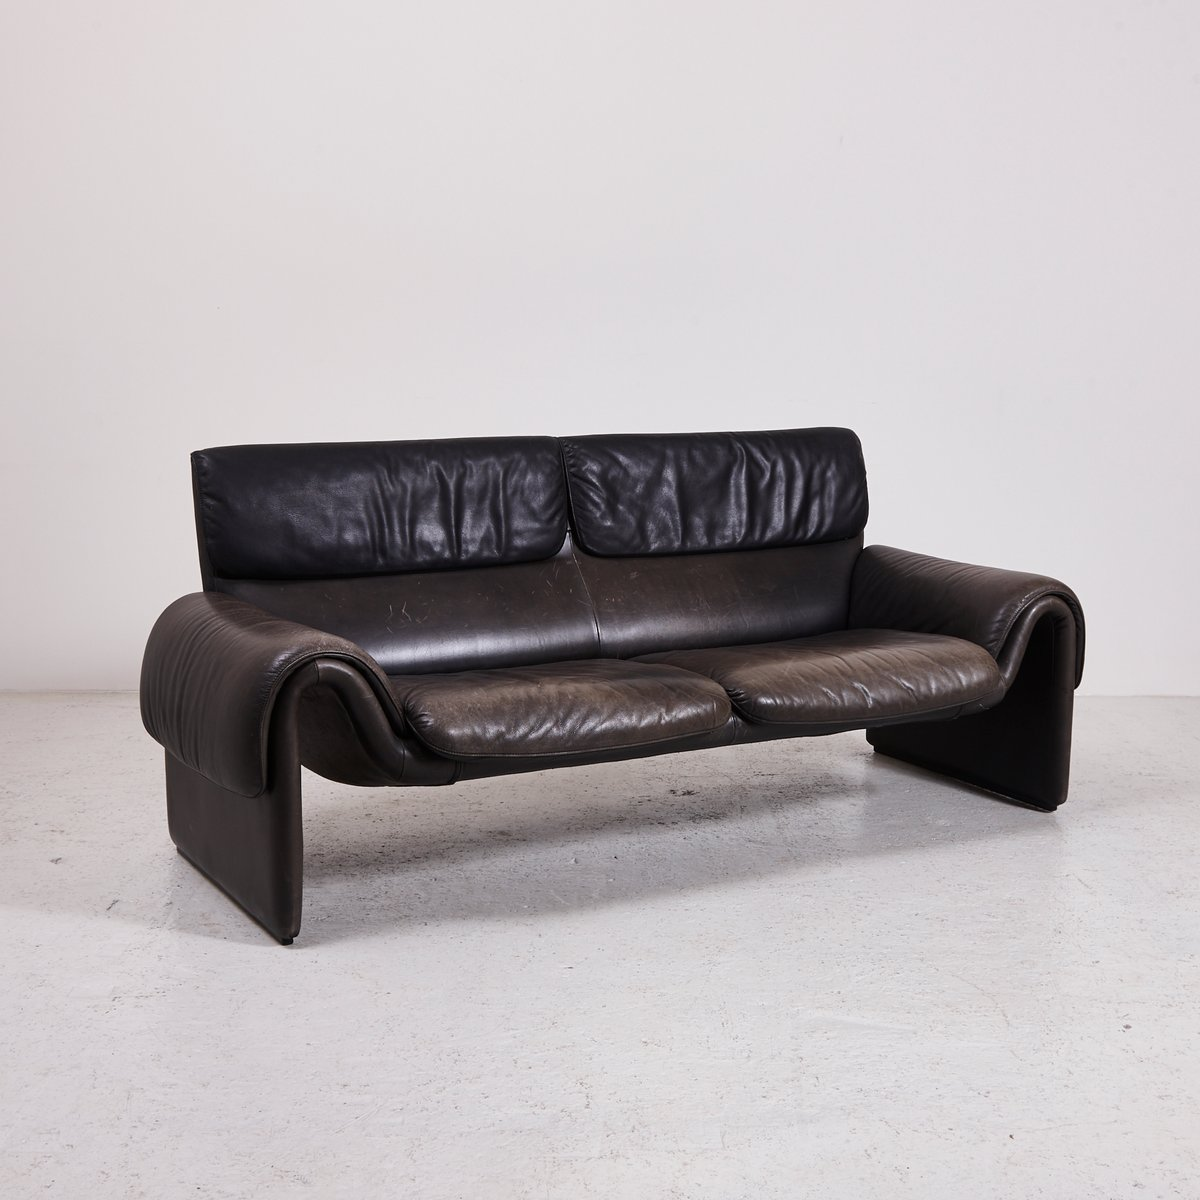 ds2011 sofa from de sede 1990s for sale at pamono. Black Bedroom Furniture Sets. Home Design Ideas